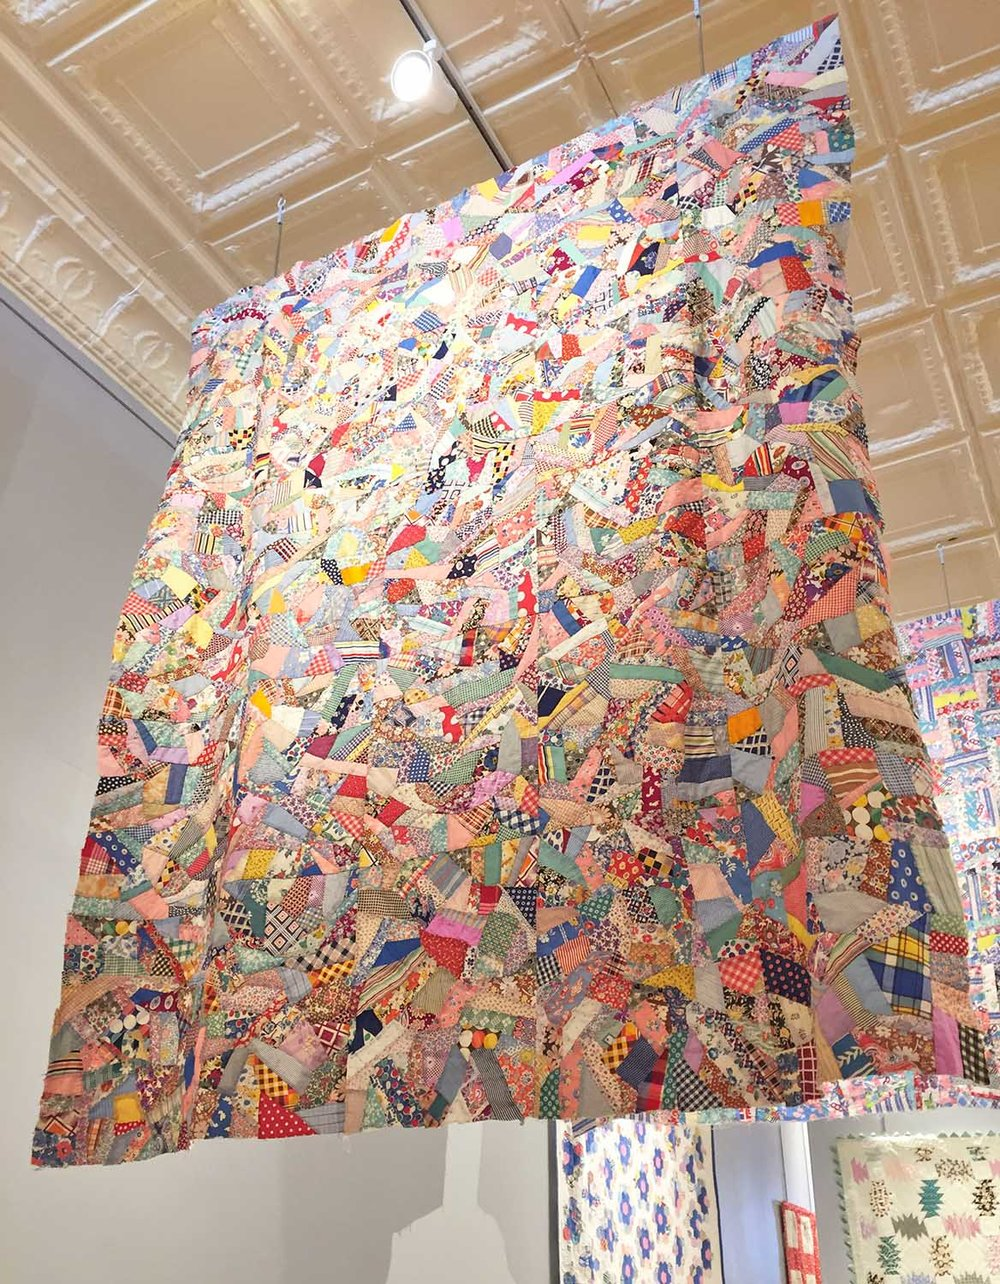 PO_Iowa Quilt Museum Feed Sack Quilt exhibition3.jpg